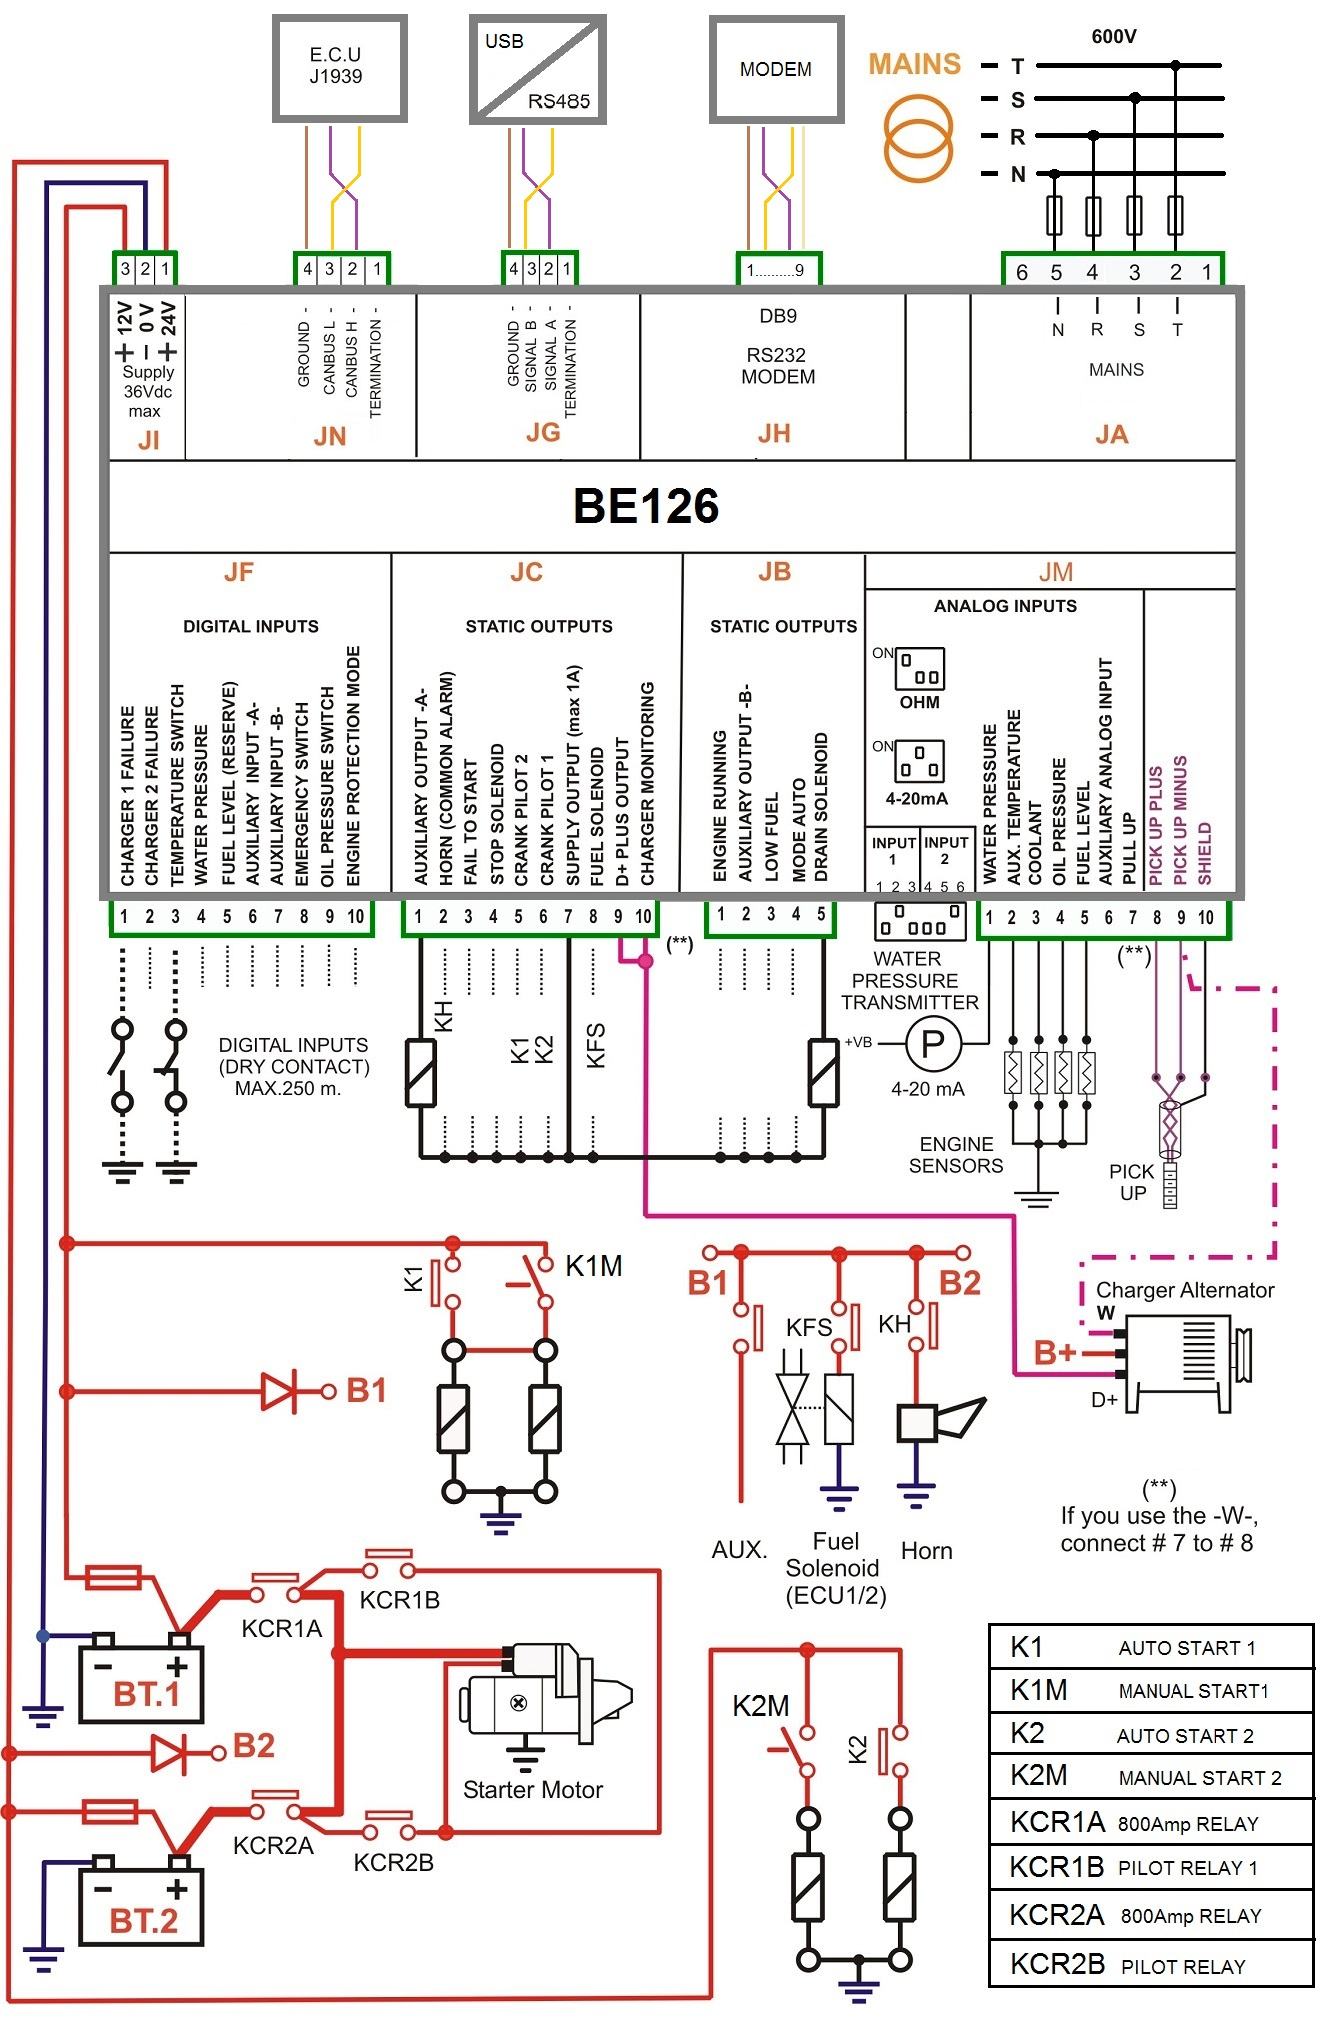 fire pump controller wiring diagram genset controller rh bernini design com control wiring diagram drawings control wiring diagram symbols drawings